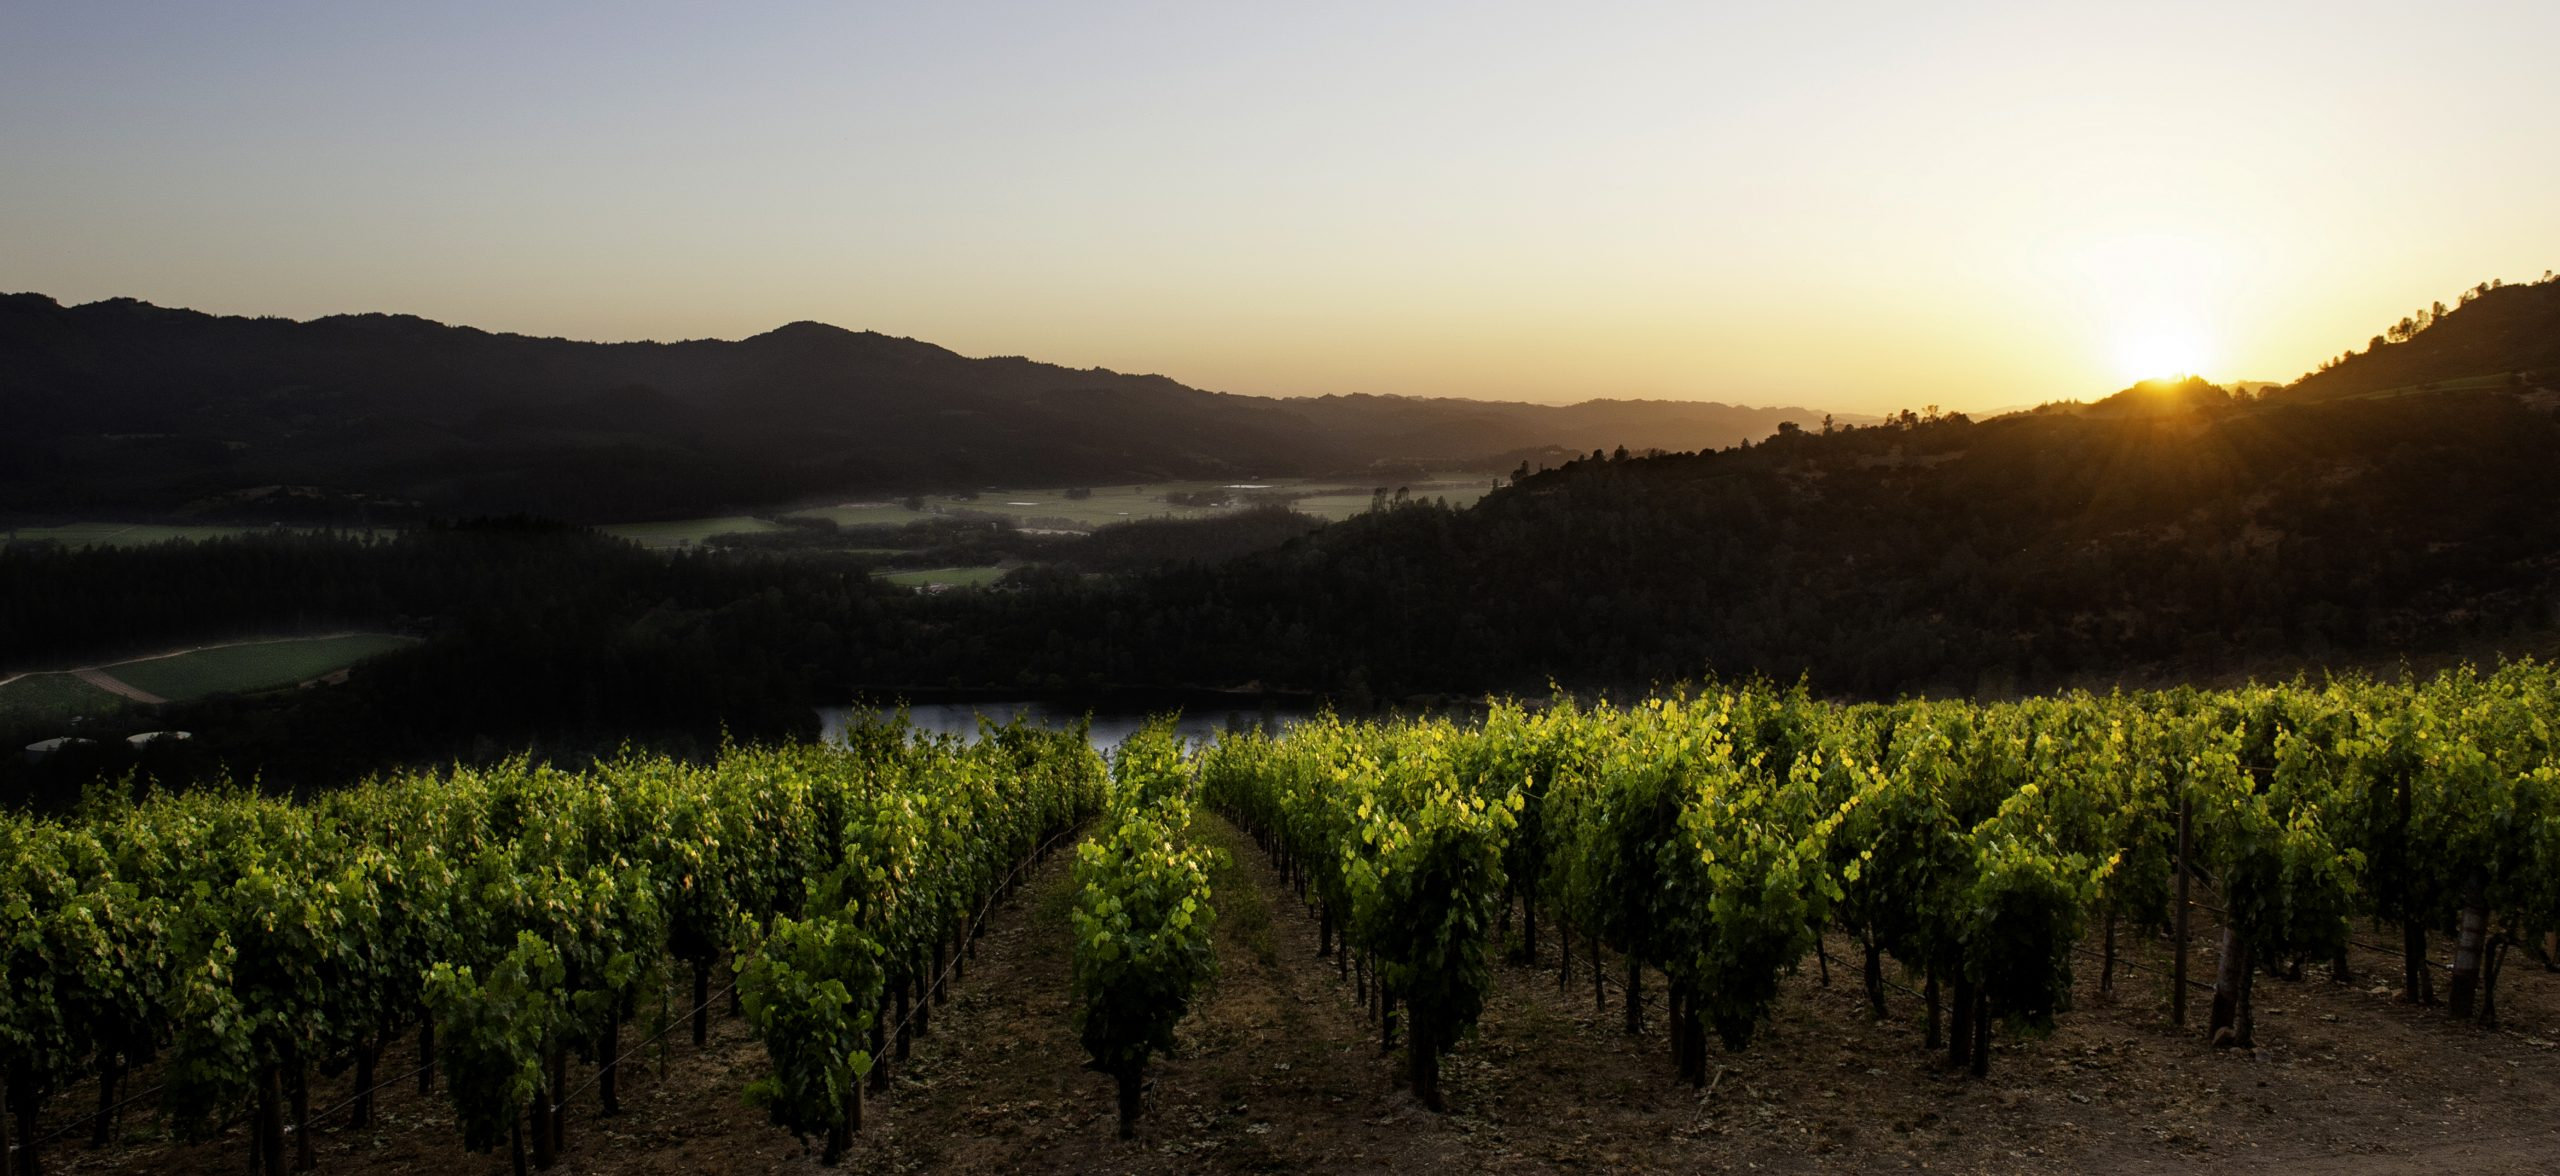 Interview with Alan Viader, Winemaker at VIADER Vineyards and Winery